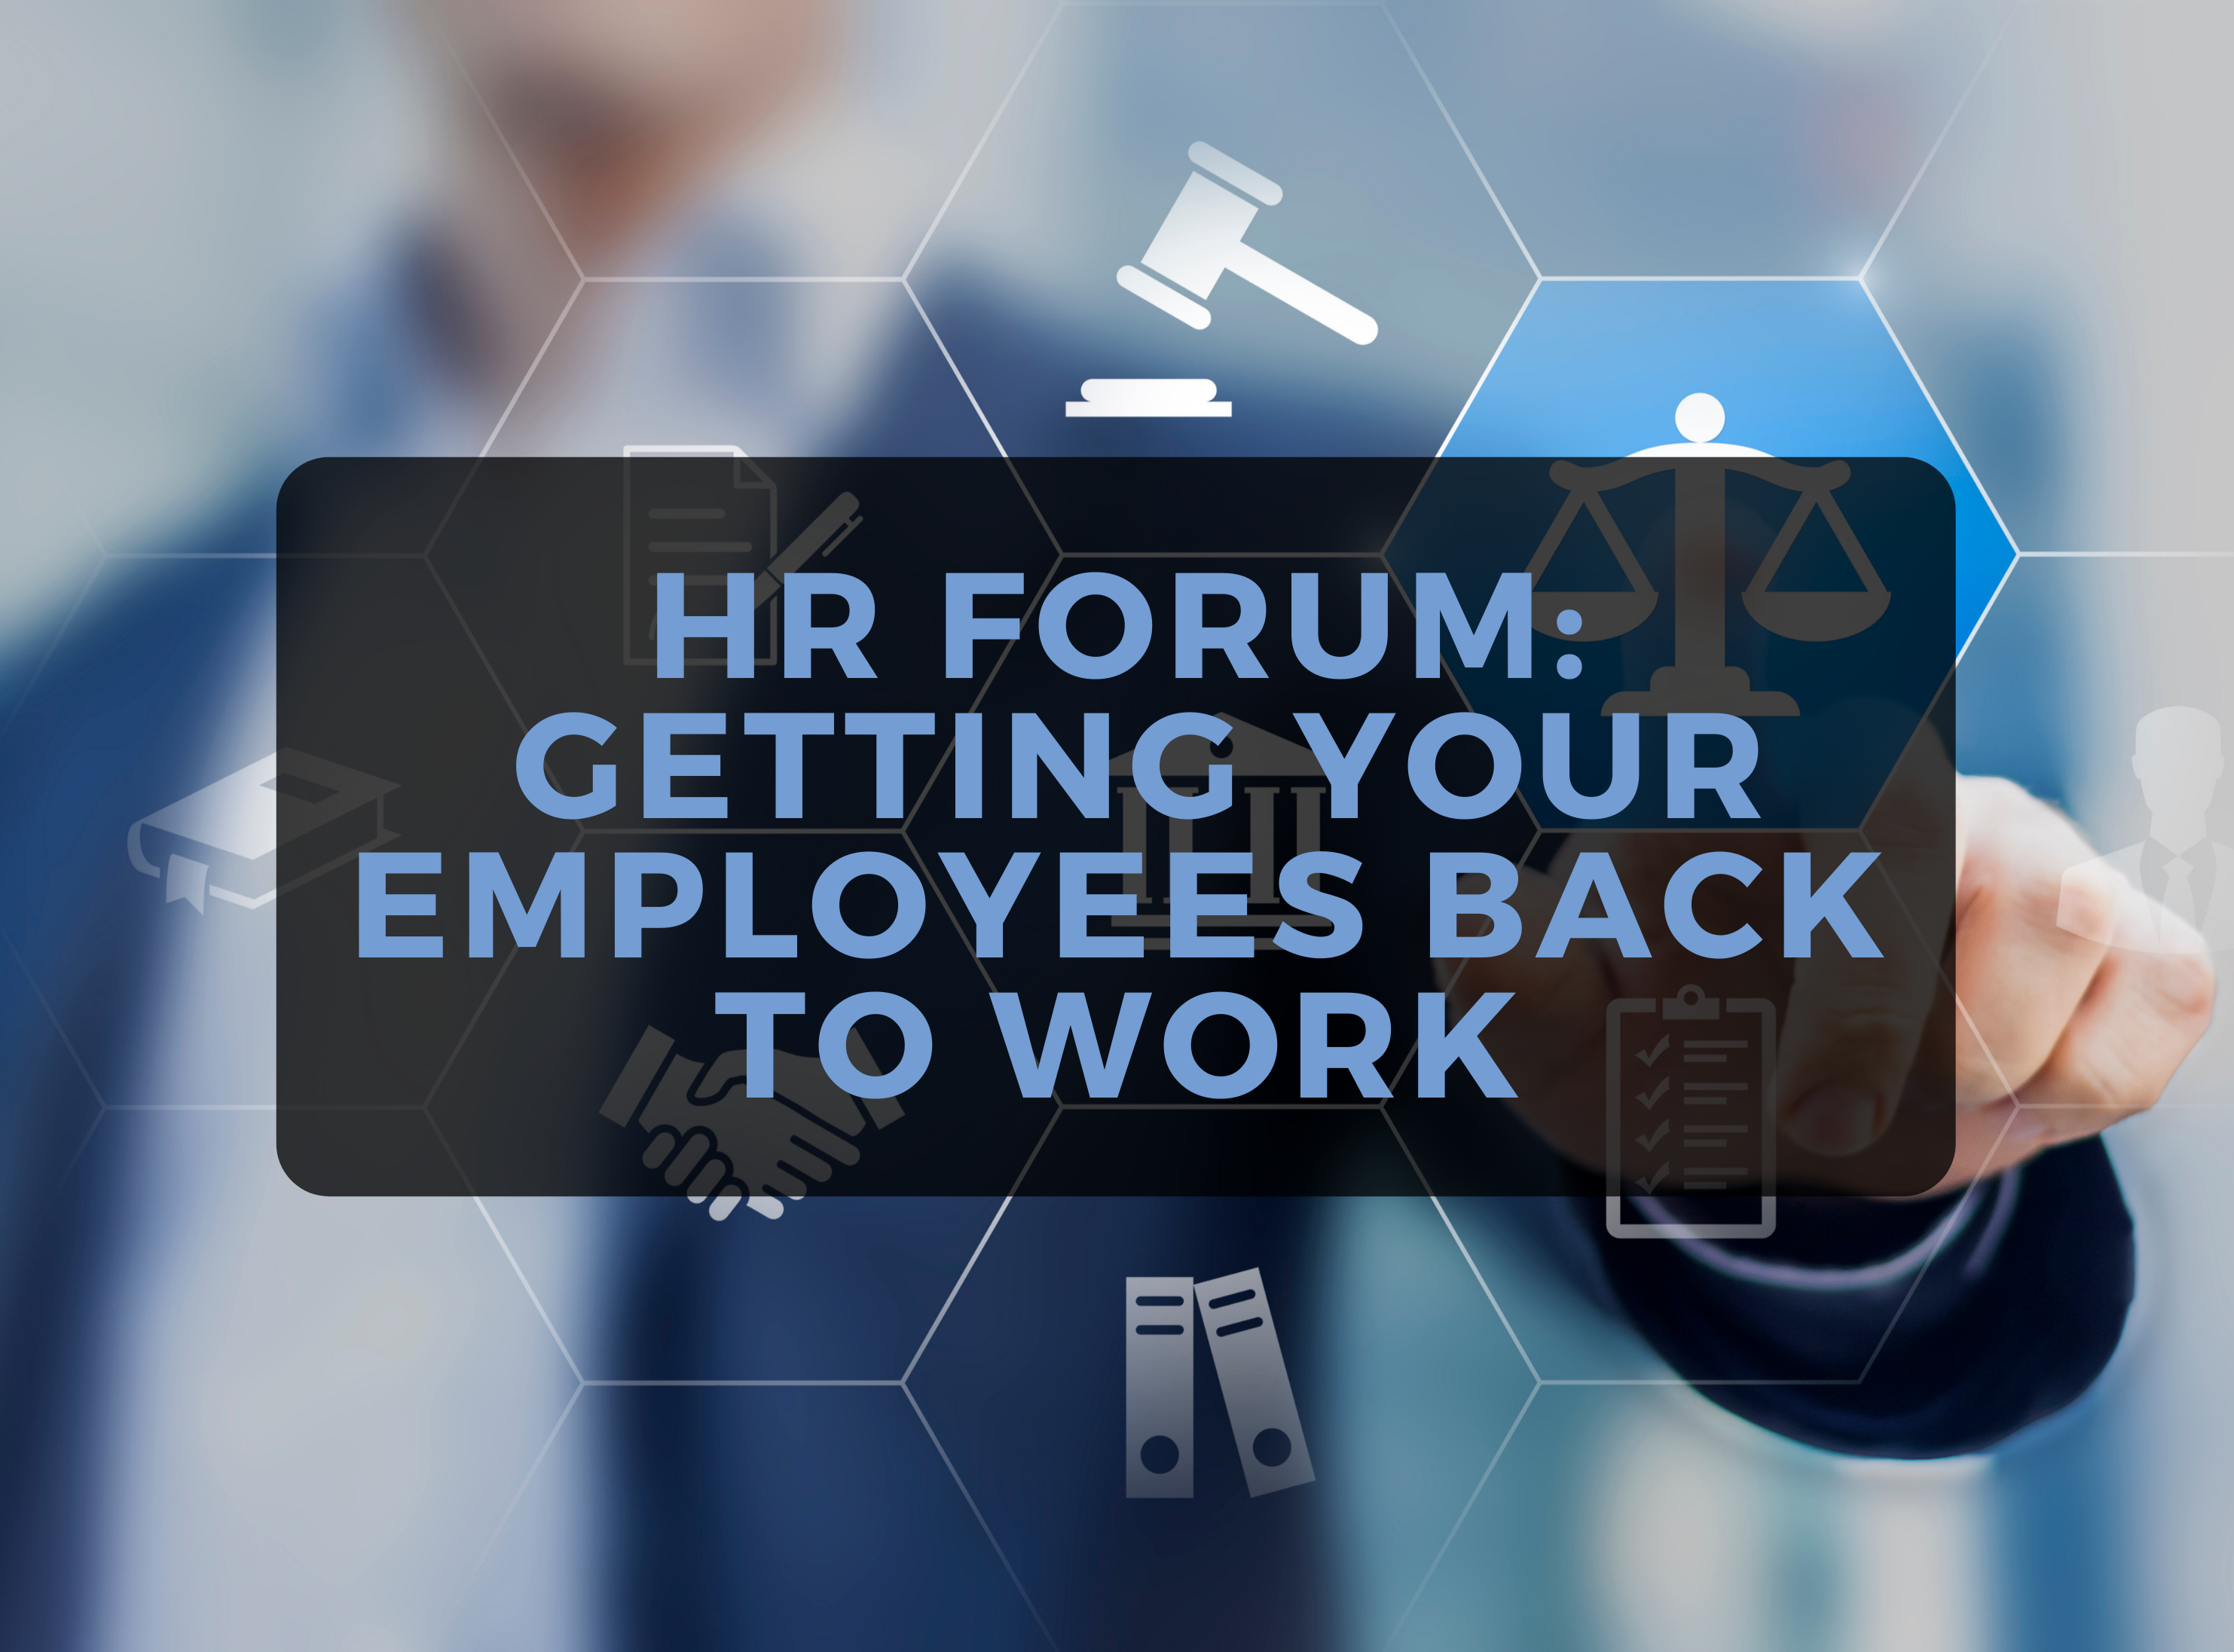 HR Forum: Getting Your Employees Back to Work